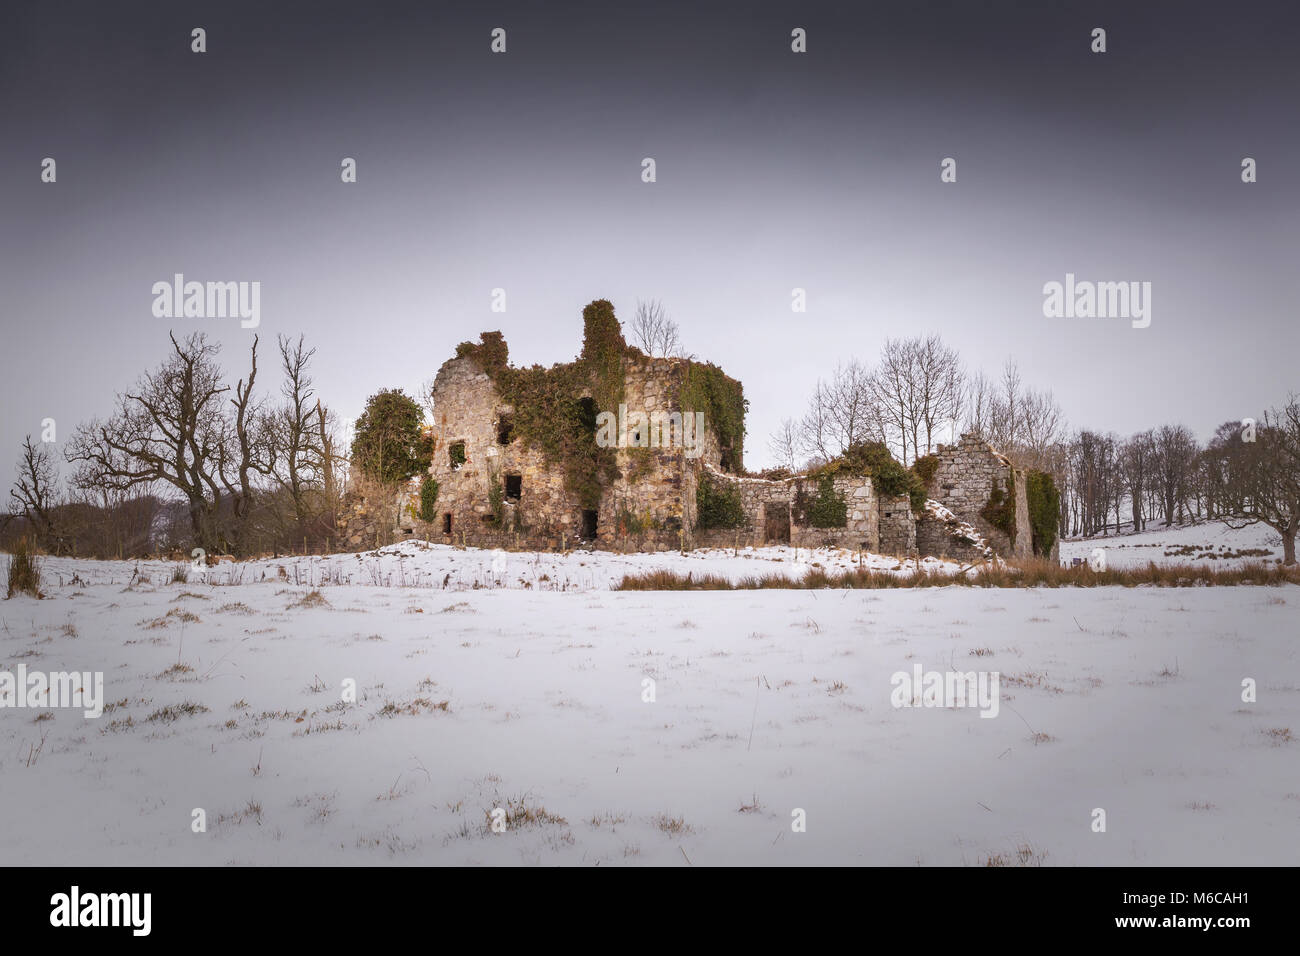 The ruins of haunted Gight Castle at Braes of Gight near Methlick, Aberdeenshire, Scotland, in the snow during winter - Stock Image